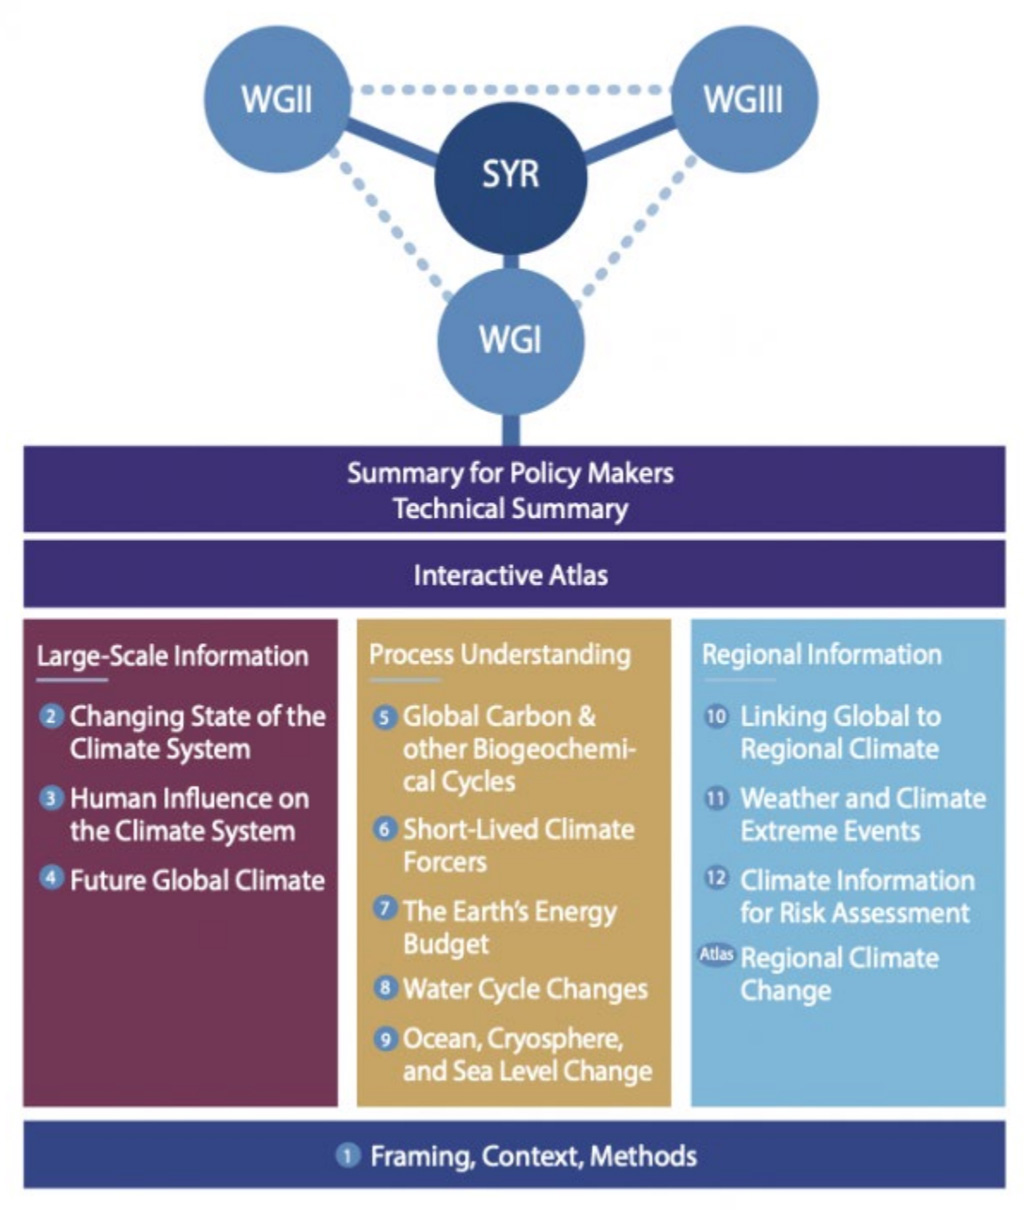 The structure of the IPCC AR6 WG1 Report